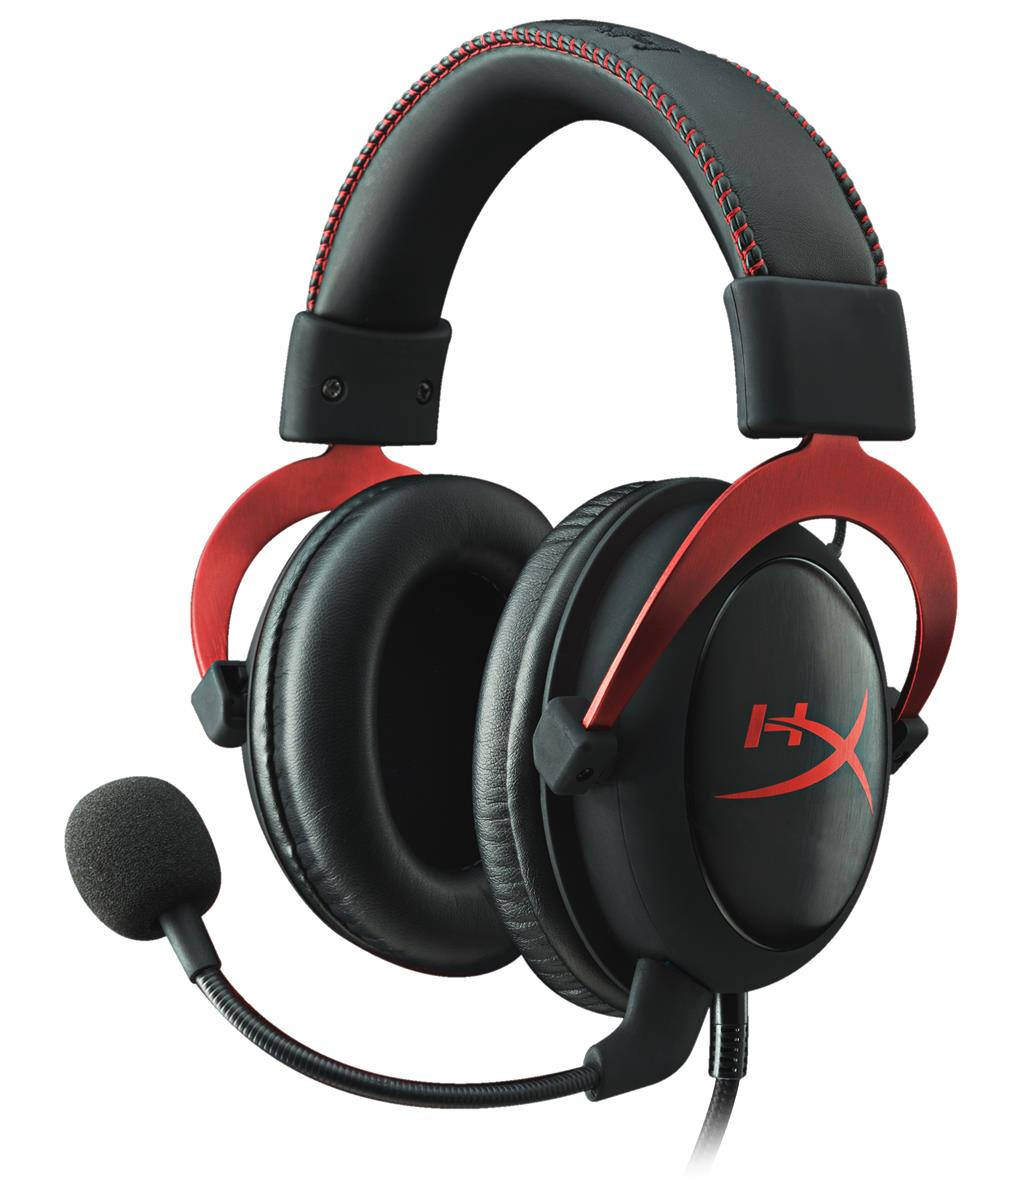 Kingston hyperx cloud ii gaming headset word cloud - Kingston Hyperx Cloud Ii Gaming Headset For Pc Ps4 Mobile Xbox Offer